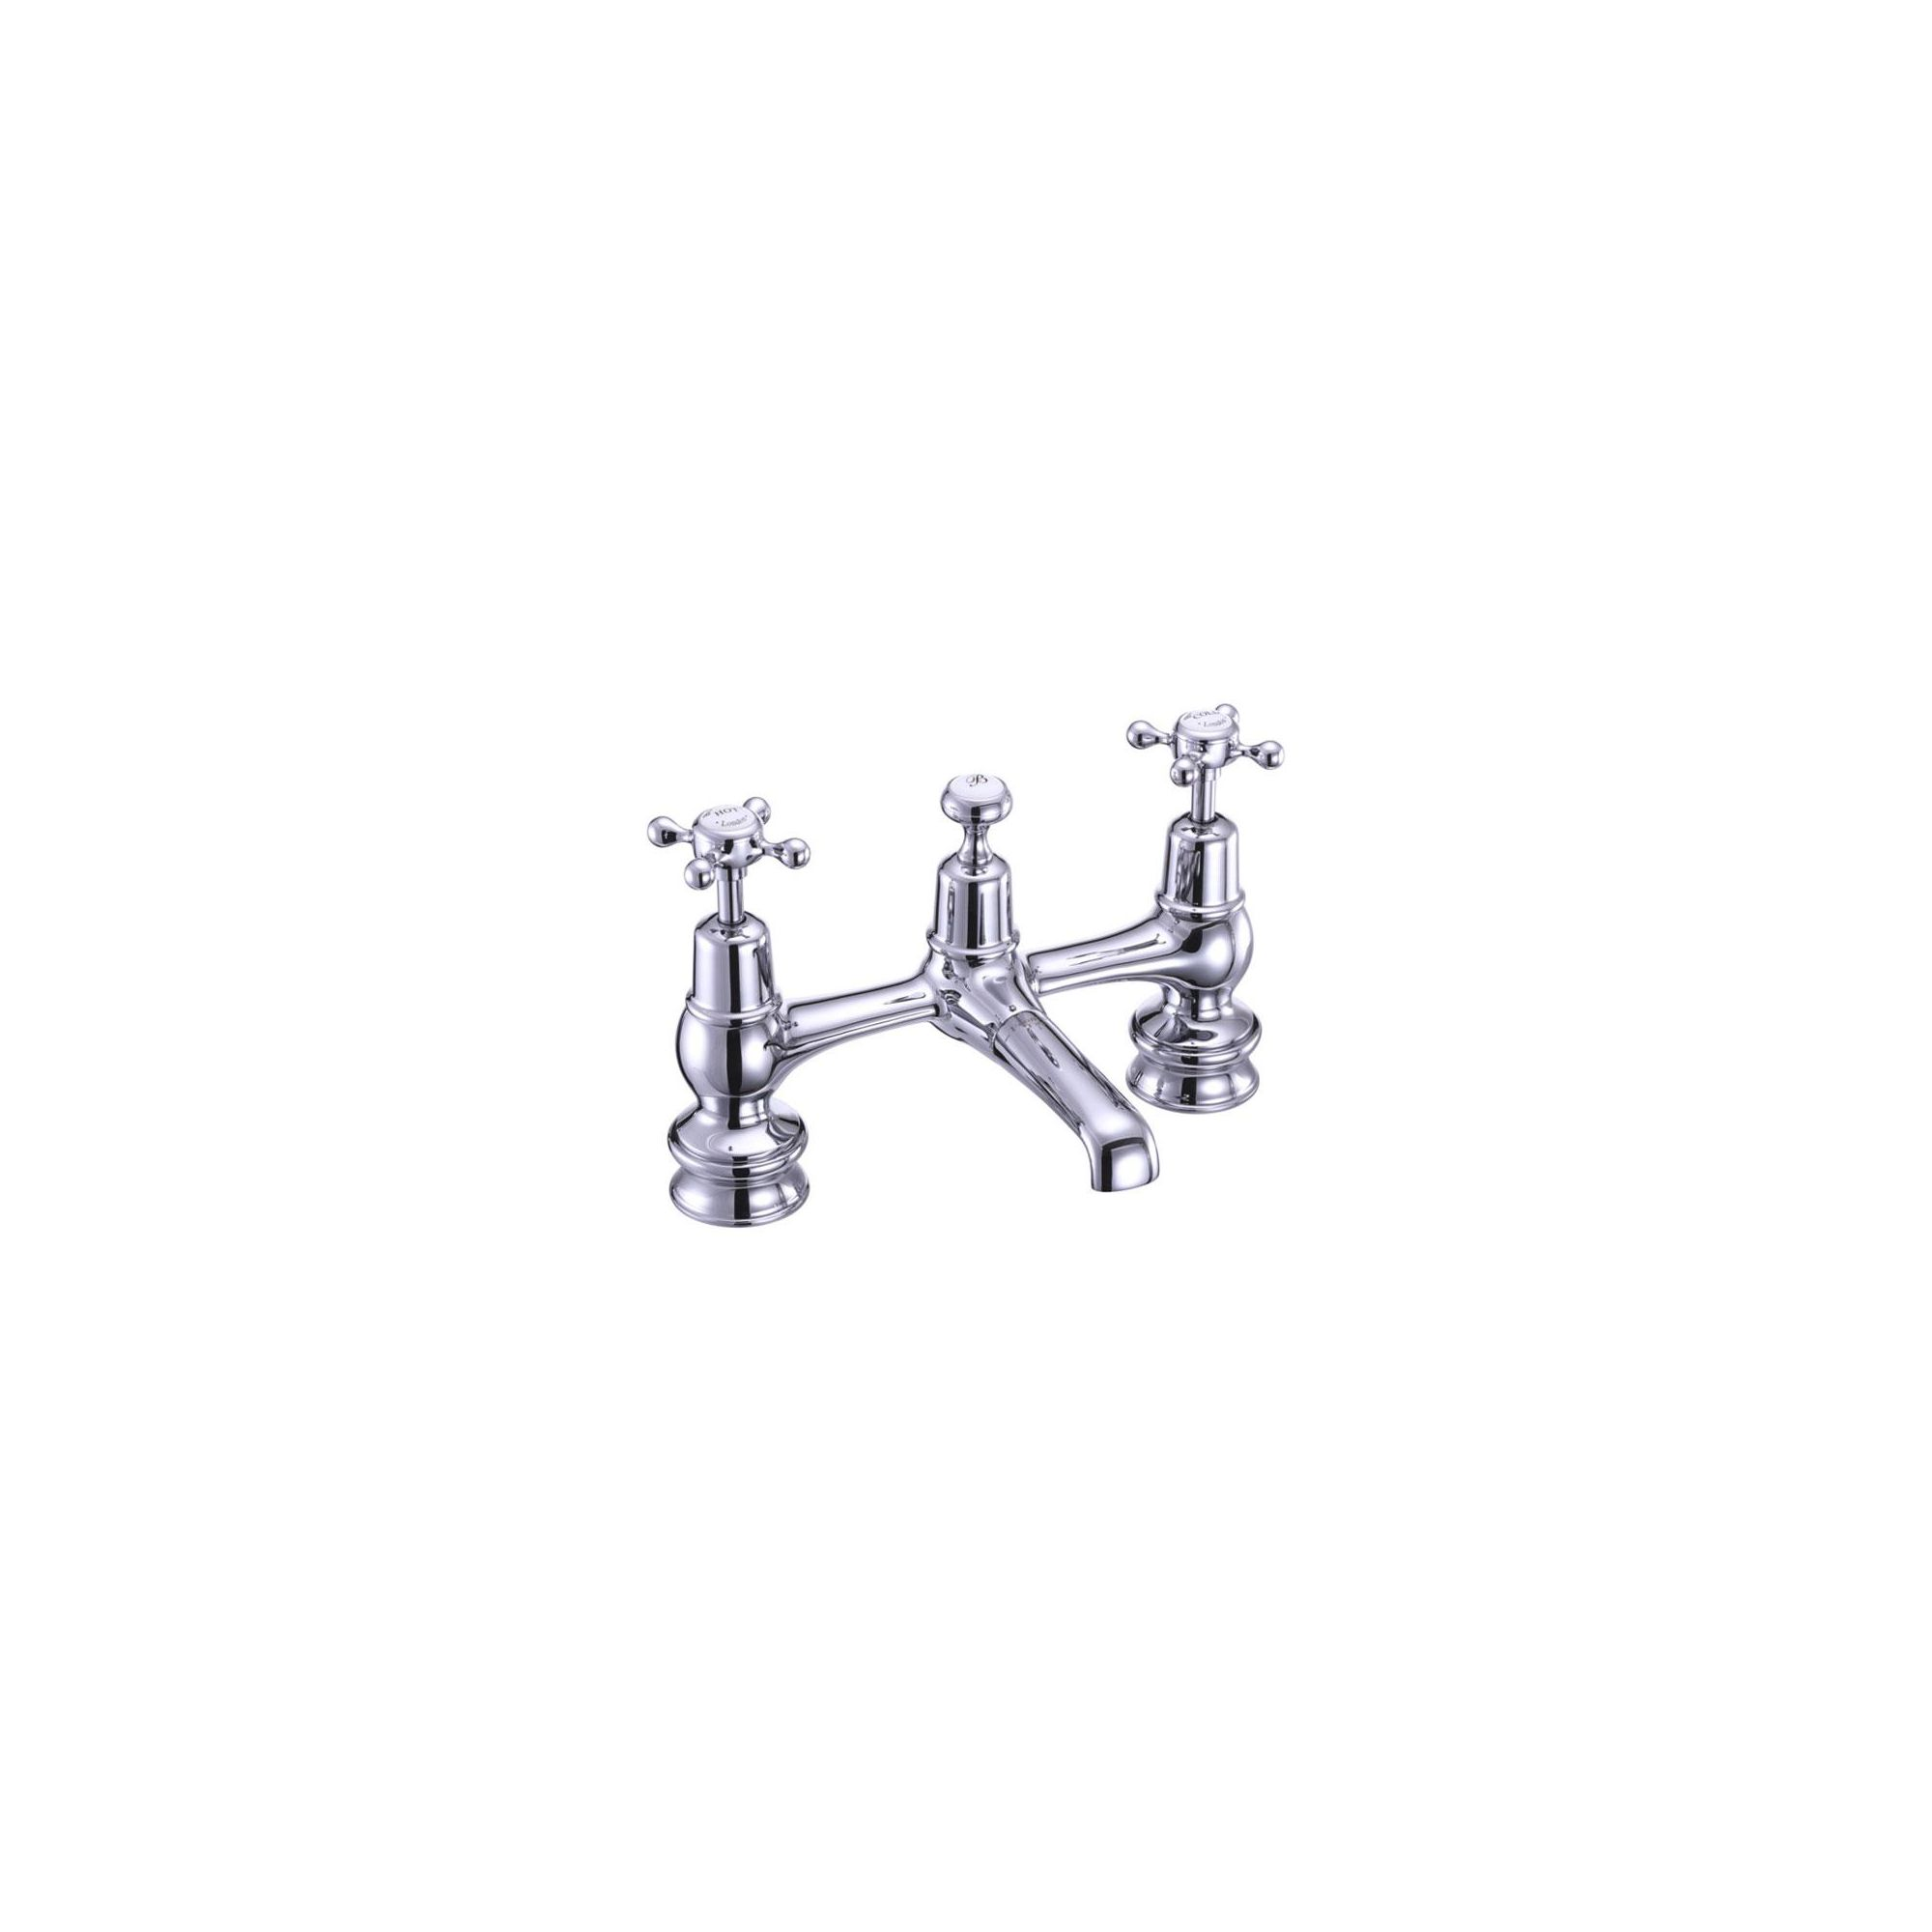 Burlington Claremont Regent 2 Hole Bridge Basin Mixer Tap, Dual Handle, Chrome at Tesco Direct